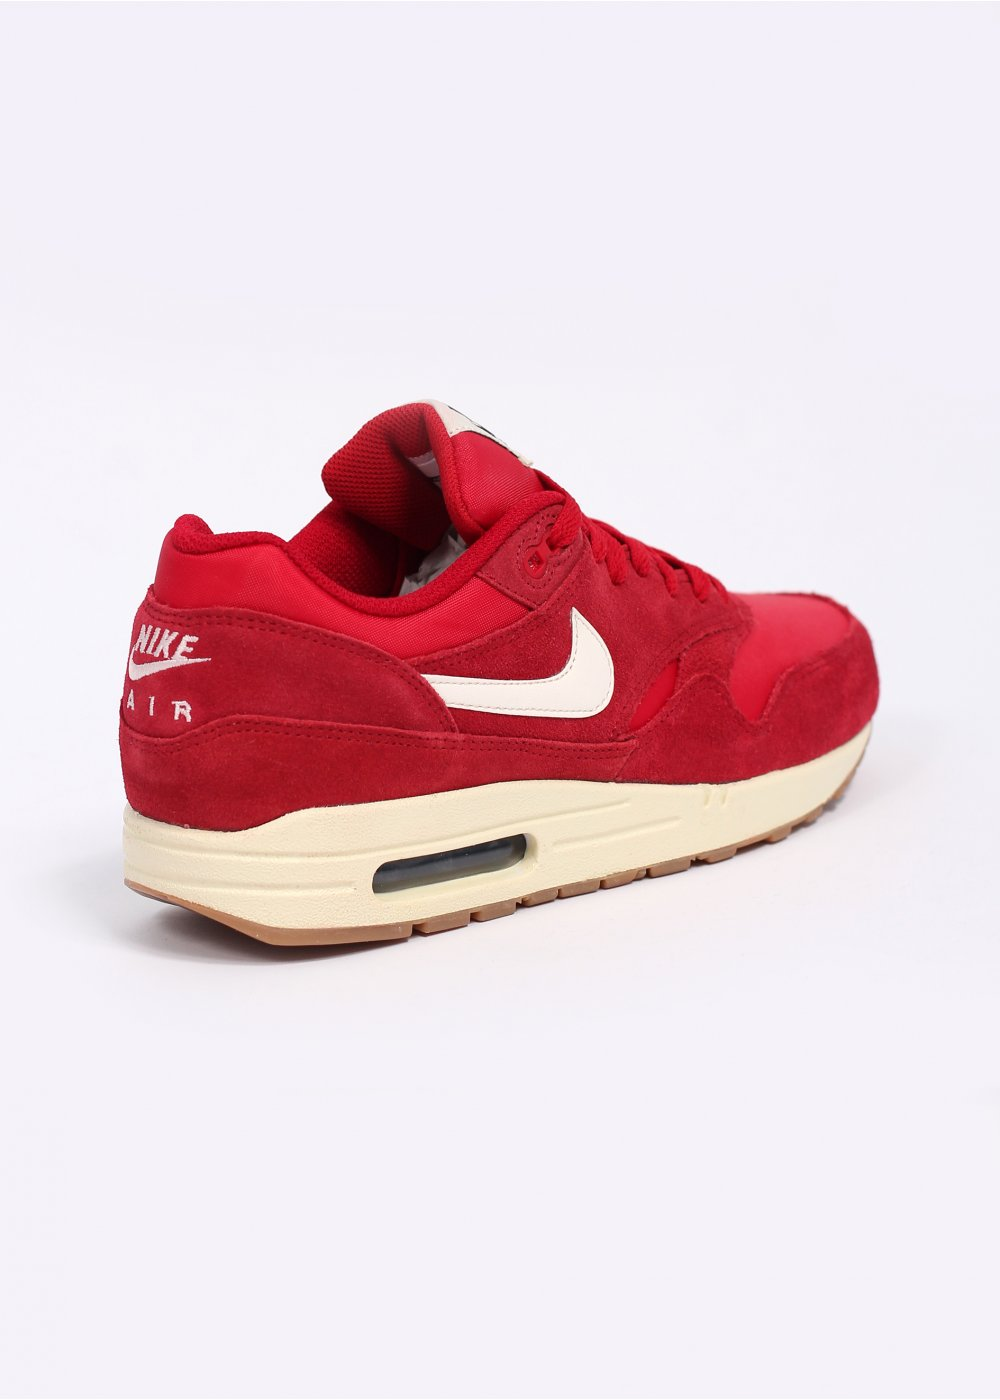 ddc53247a07 nike air max 1 essential sail for sale by owner